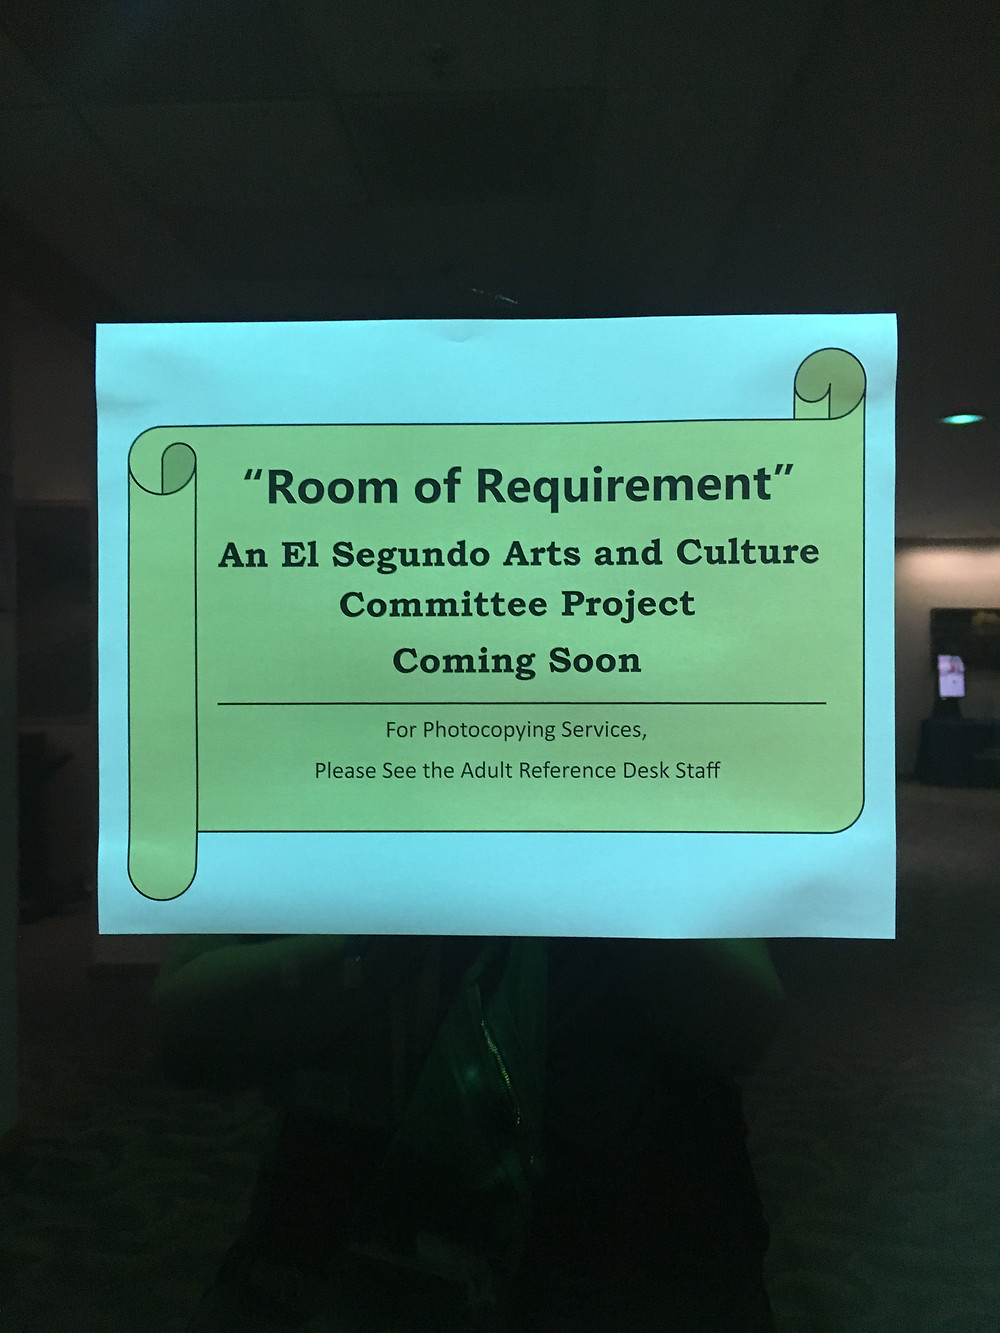 A sign introducing the Room of Requirement is posted on a door at the El Segundo Public Library